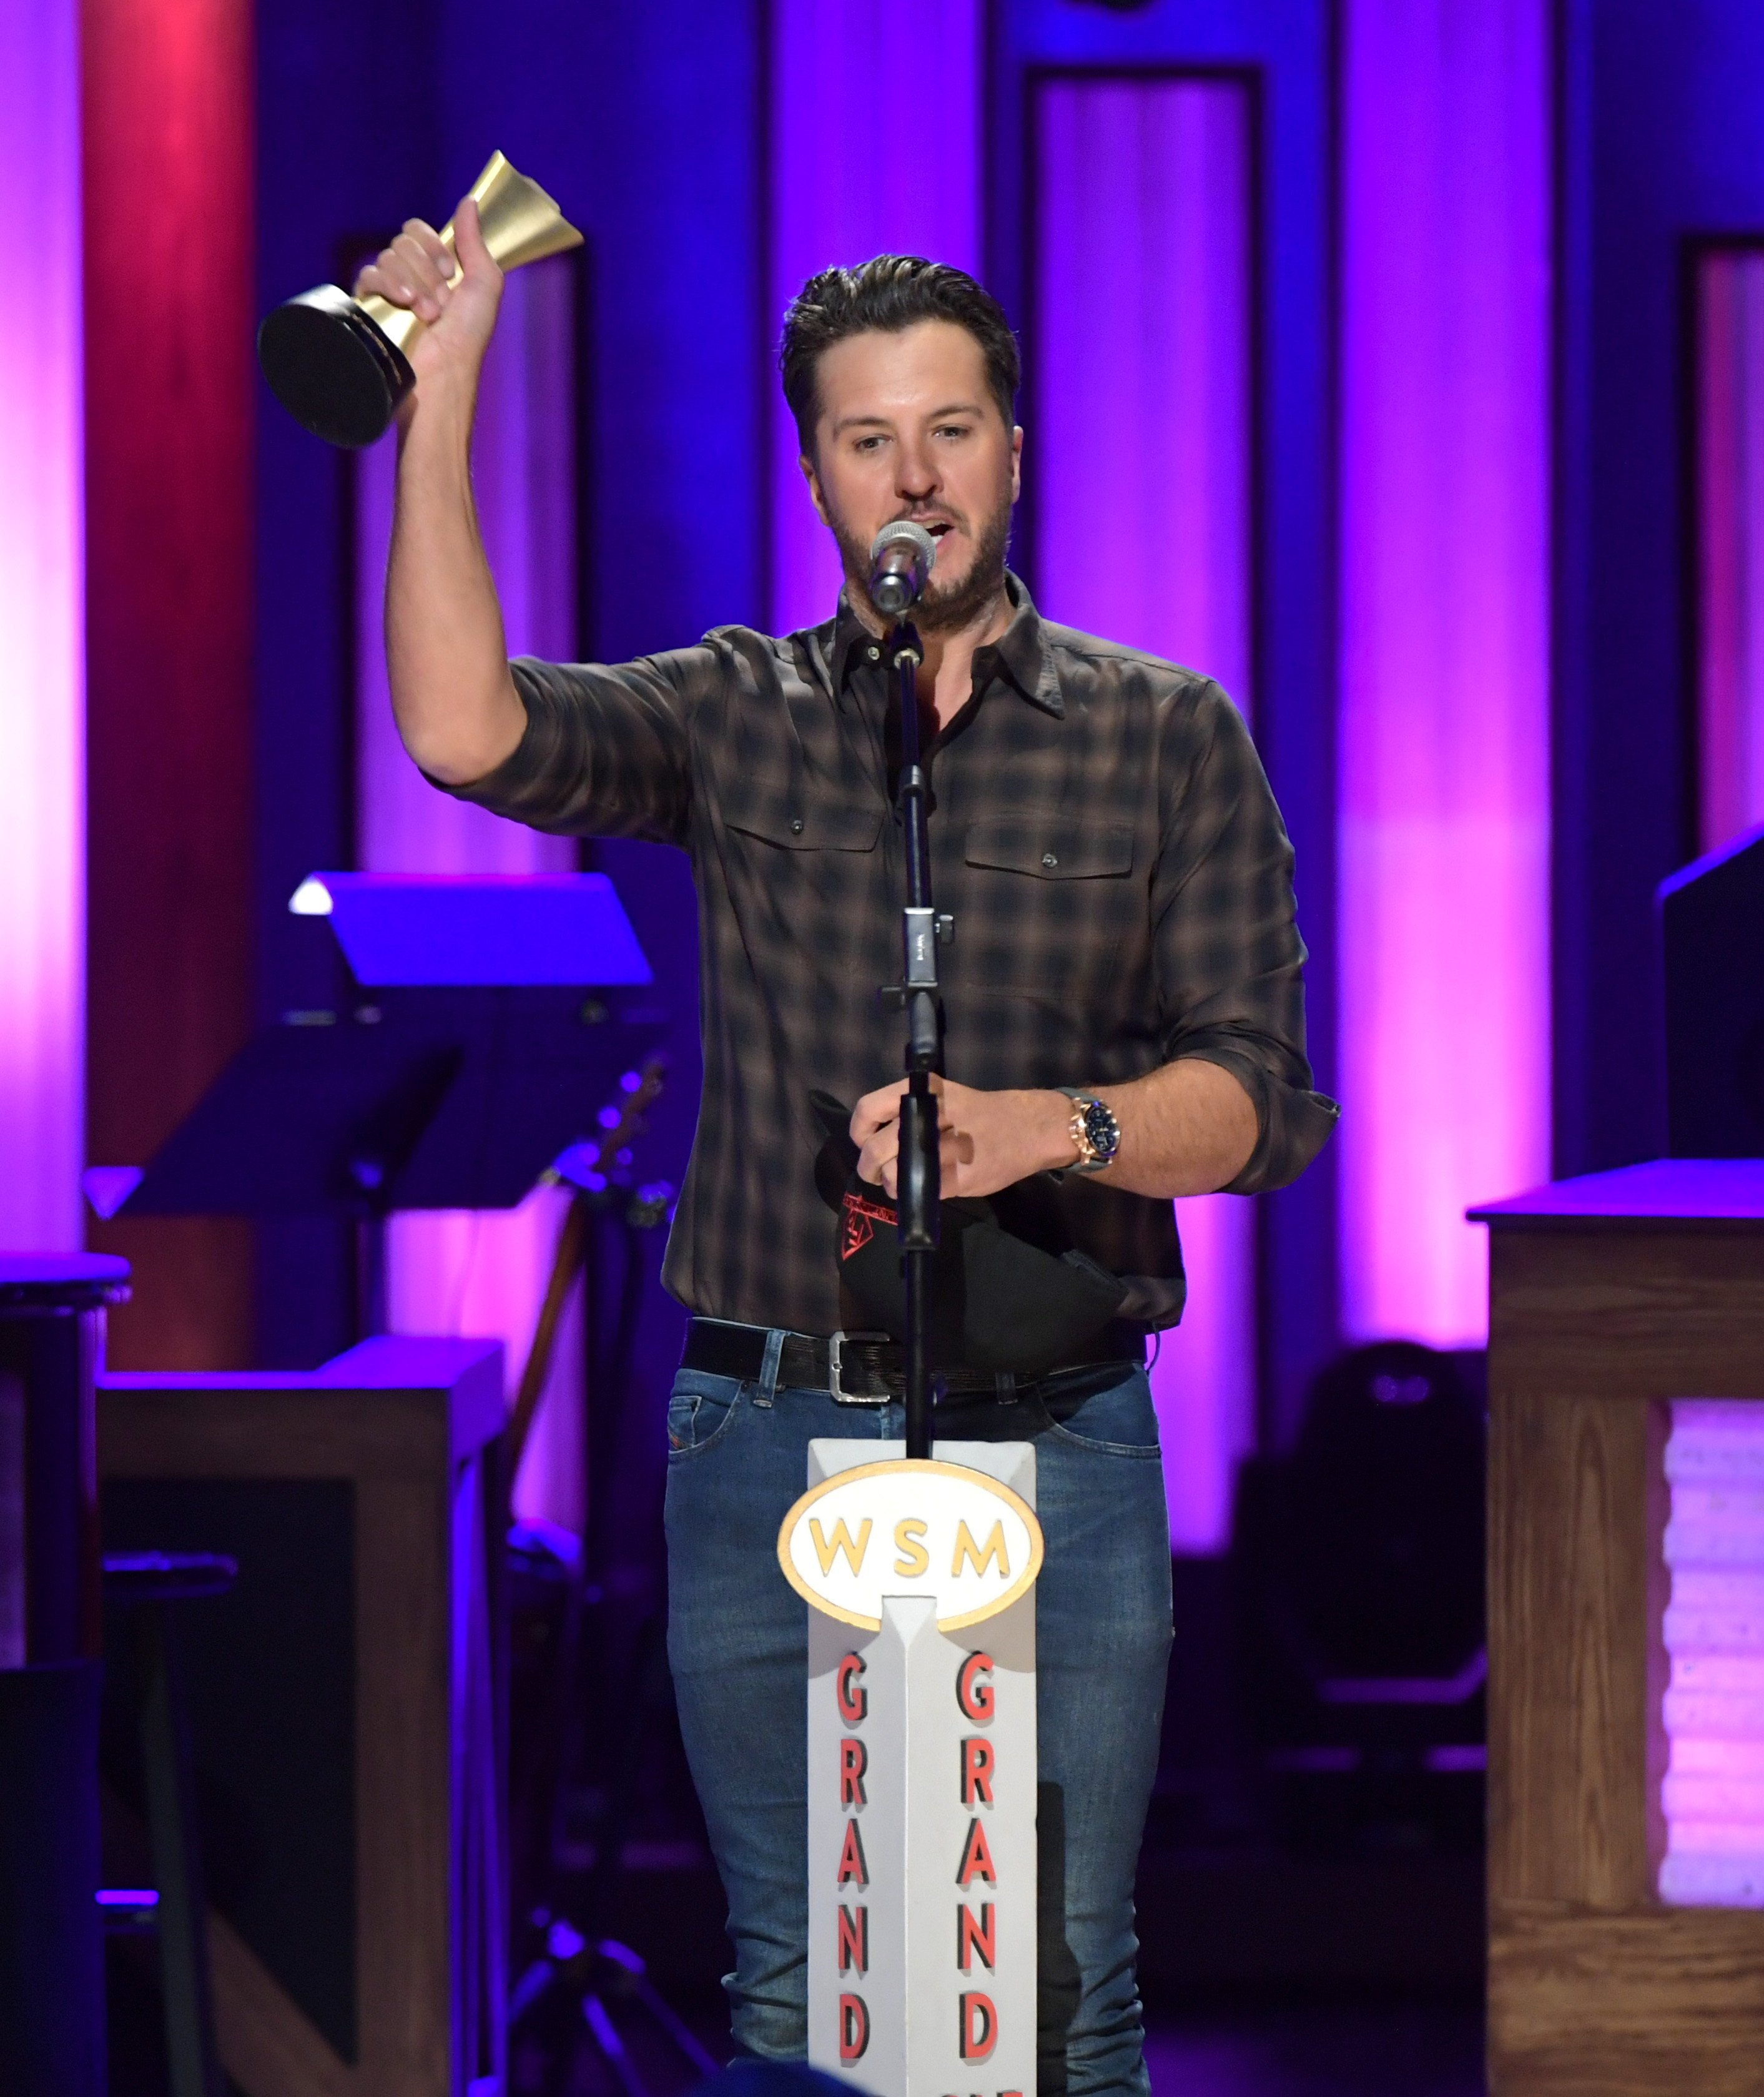 Luke Bryan receives the Artist of the Decade Award from ACM in Nashville, Tennessee on October 22, 2019 | Photo: Getty Images